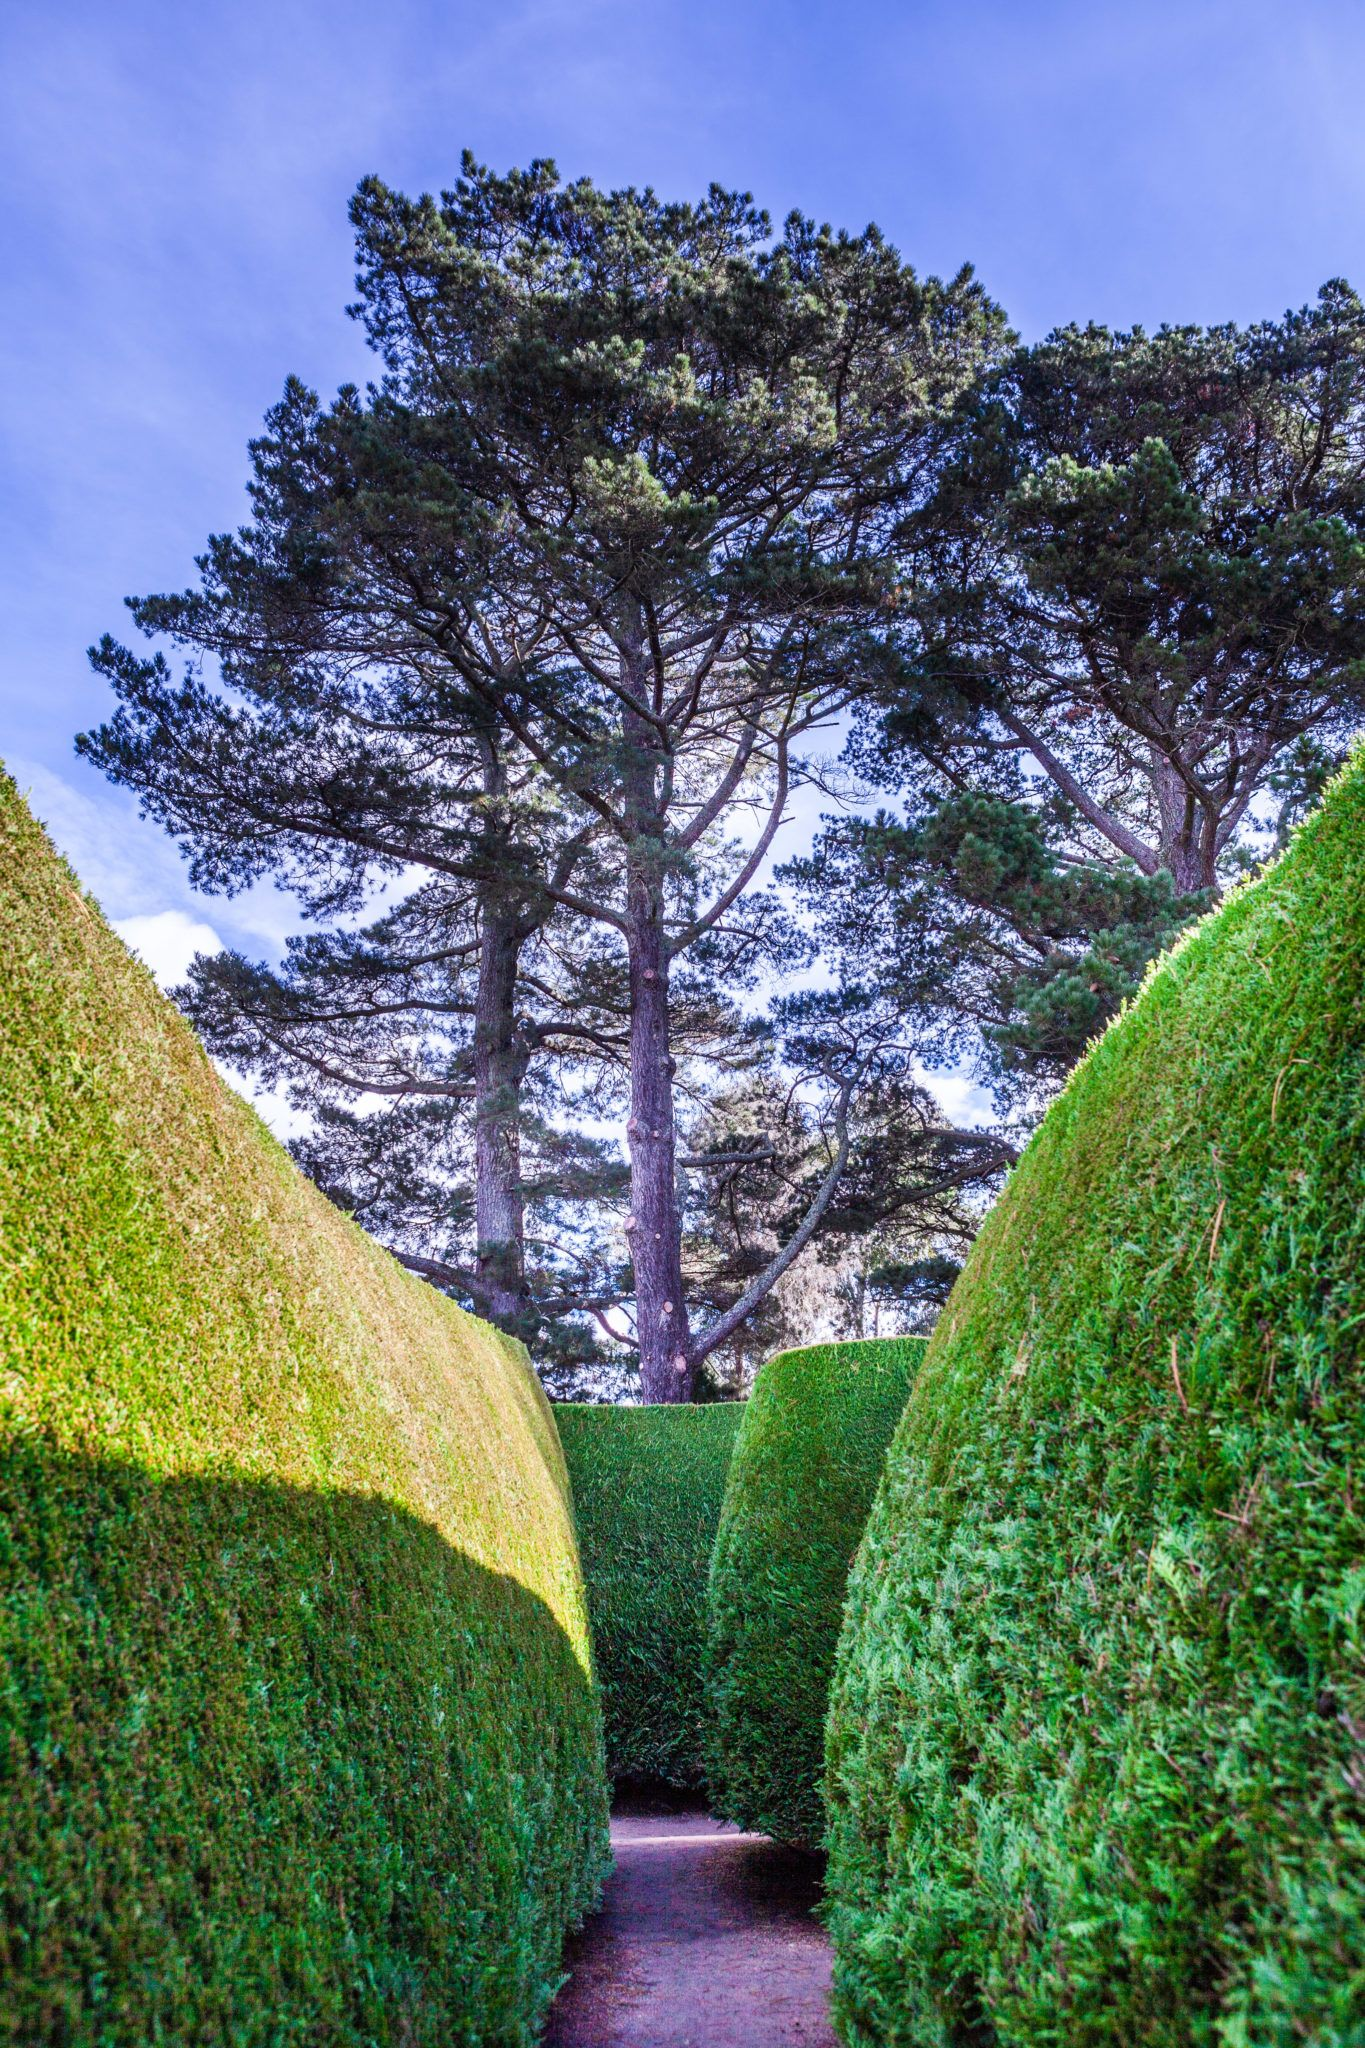 Tall trees and green garden with walkway vertical image